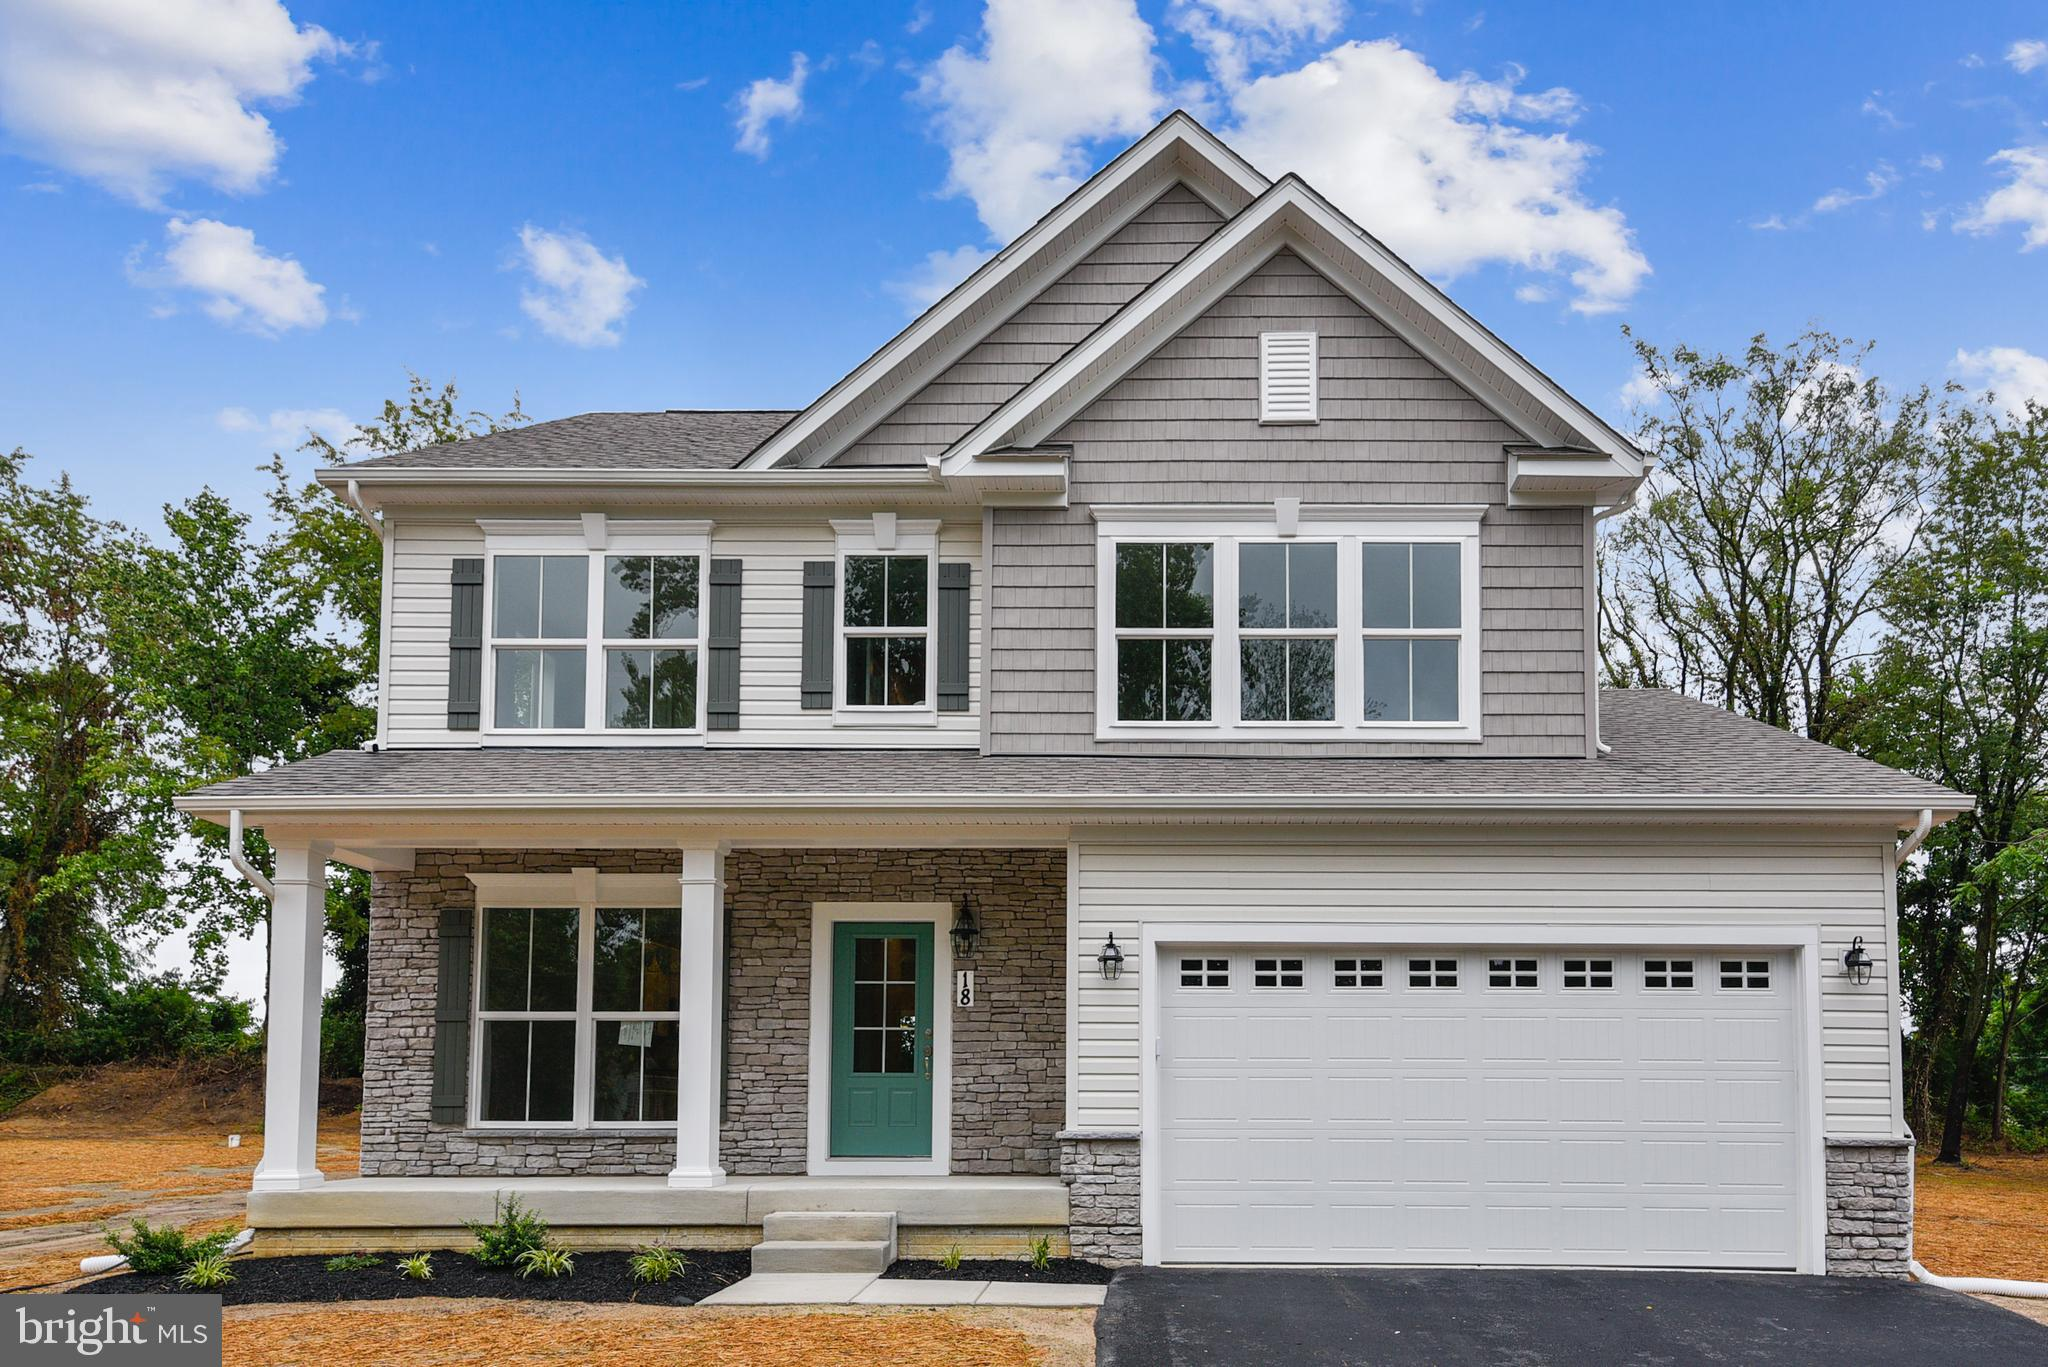 """TO BE BUILT (photos are of a recently built home) - Own your own little slice of peaceful heaven right next door to Trap Pond State Park! This lot is located on a low-traffic road and is ideal for walking or biking. Surround yourself with nature in a brand new home built by Caruso Homes!   Featured is Caruso's Deerfield model. This 4 bedroom floor plan with optional in-law suite (upgrade) downstairs features a beautiful open concept with a large great room that flows right into the kitchen. The kitchen offers a 9 ft island and plenty of counter space for entertaining friends and family. The dining room leads to the kitchen right off of the huge open foyer! Upstairs boasts 3 bedrooms and the master suite! Buy the beautiful base model or choose to upgrade by adding an additional bedroom, morning room, screened porch, in-law suite, or loft. Upgrade options and custom changes are at an additional cost. Photos and tours may display optional features or upgrades that are not included in the price. Square footage is approximate and will be finalized with choice of final options. Other Caruso Homes models are available to be built on this lot.    *Listed price is inclusive of lot price, house base price, selected options, and estimated engineering, site work, permits and utility connections (""""Lot Finishing Costs"""").*"""